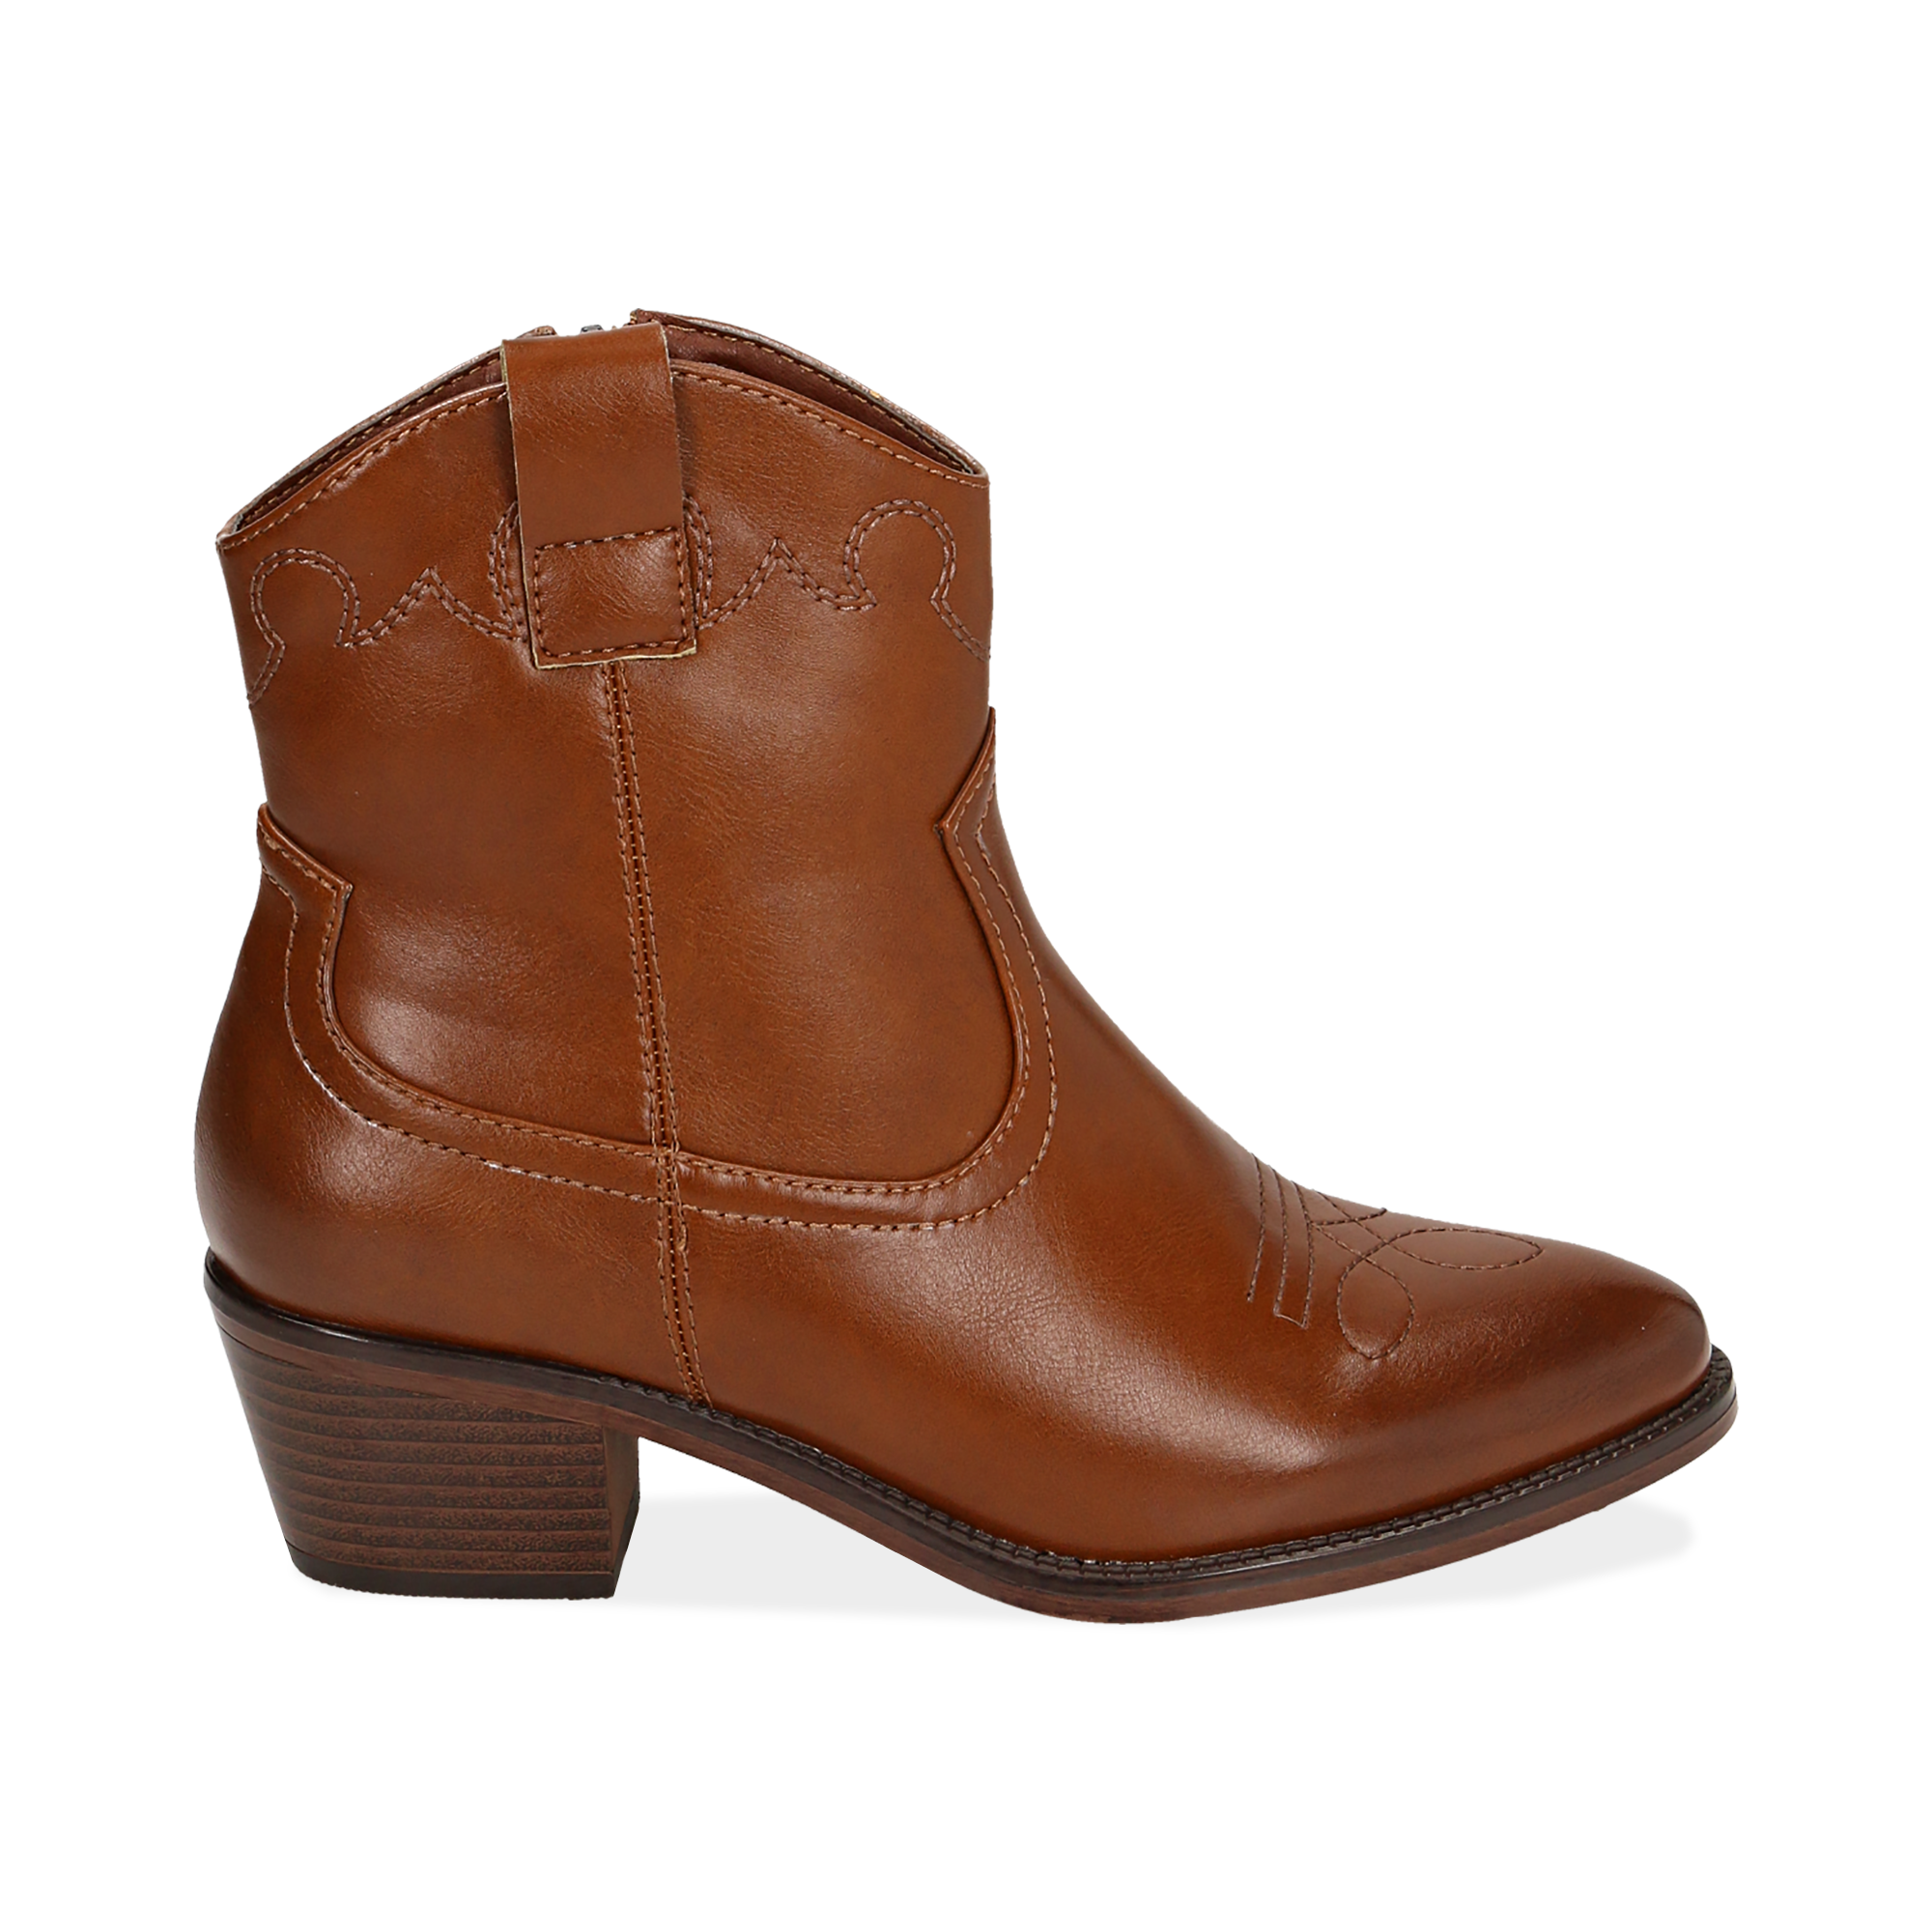 Ankle boots cuoio, tacco 5,50 cm